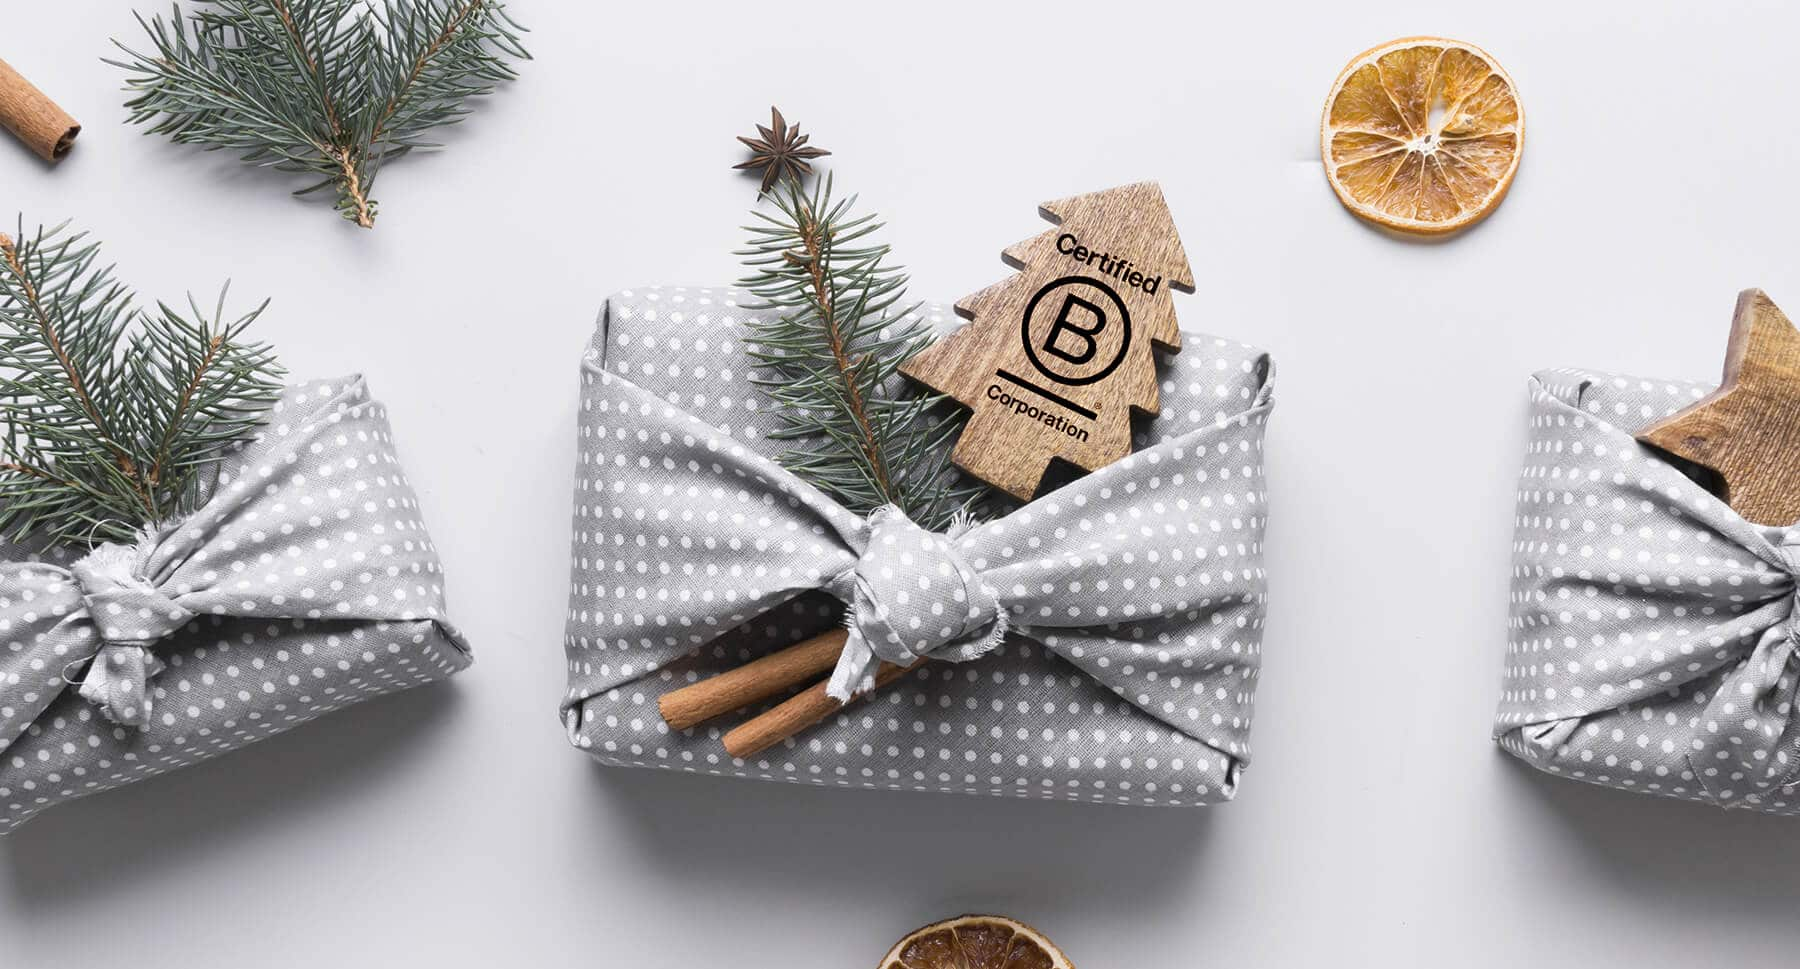 Holiday gifts wrapped with zero waste fabric packaging